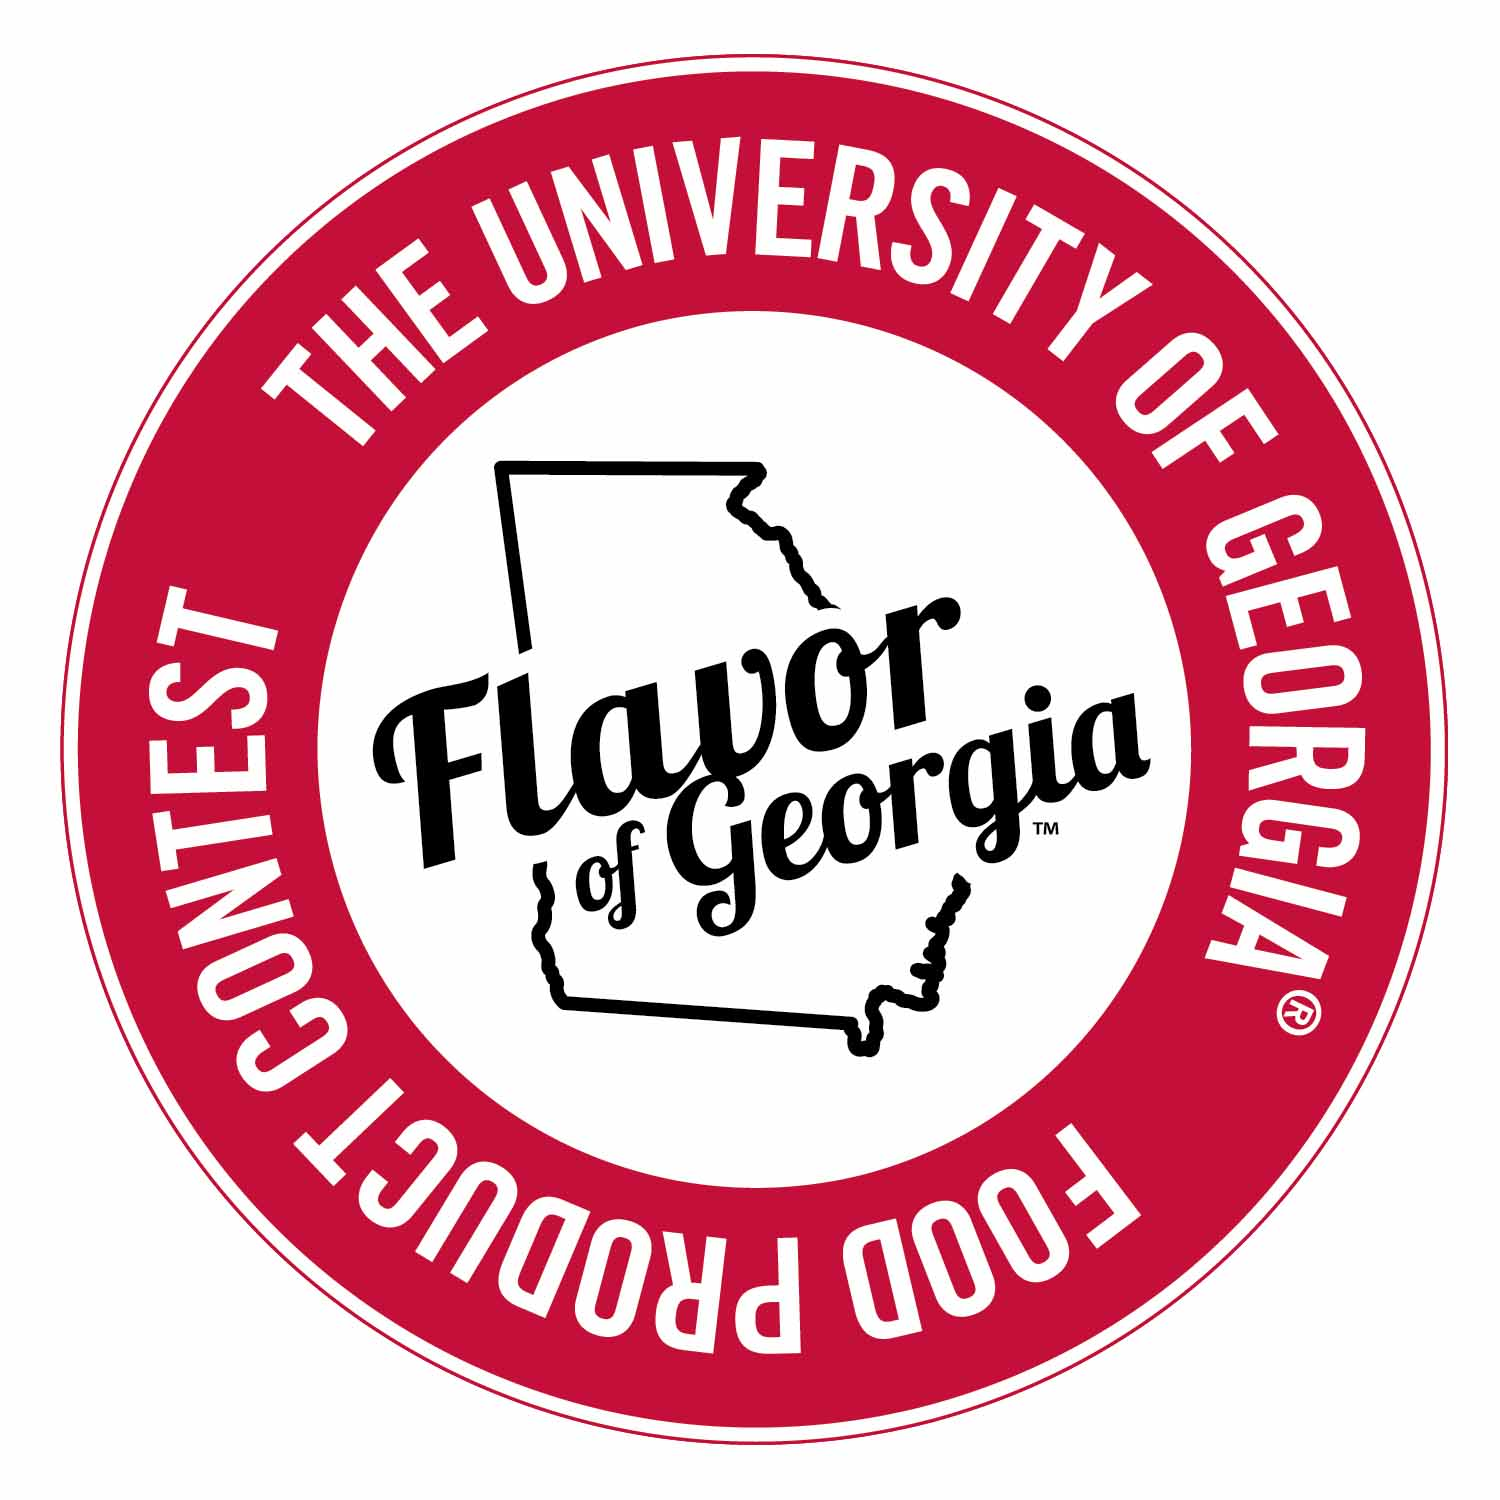 Preliminary judging for the 2018 Flavor of Georgia Food Product Contest is over, and 33 Flavor of Georgia finalists will bring their products to Atlanta for the final round of judging on March 21.